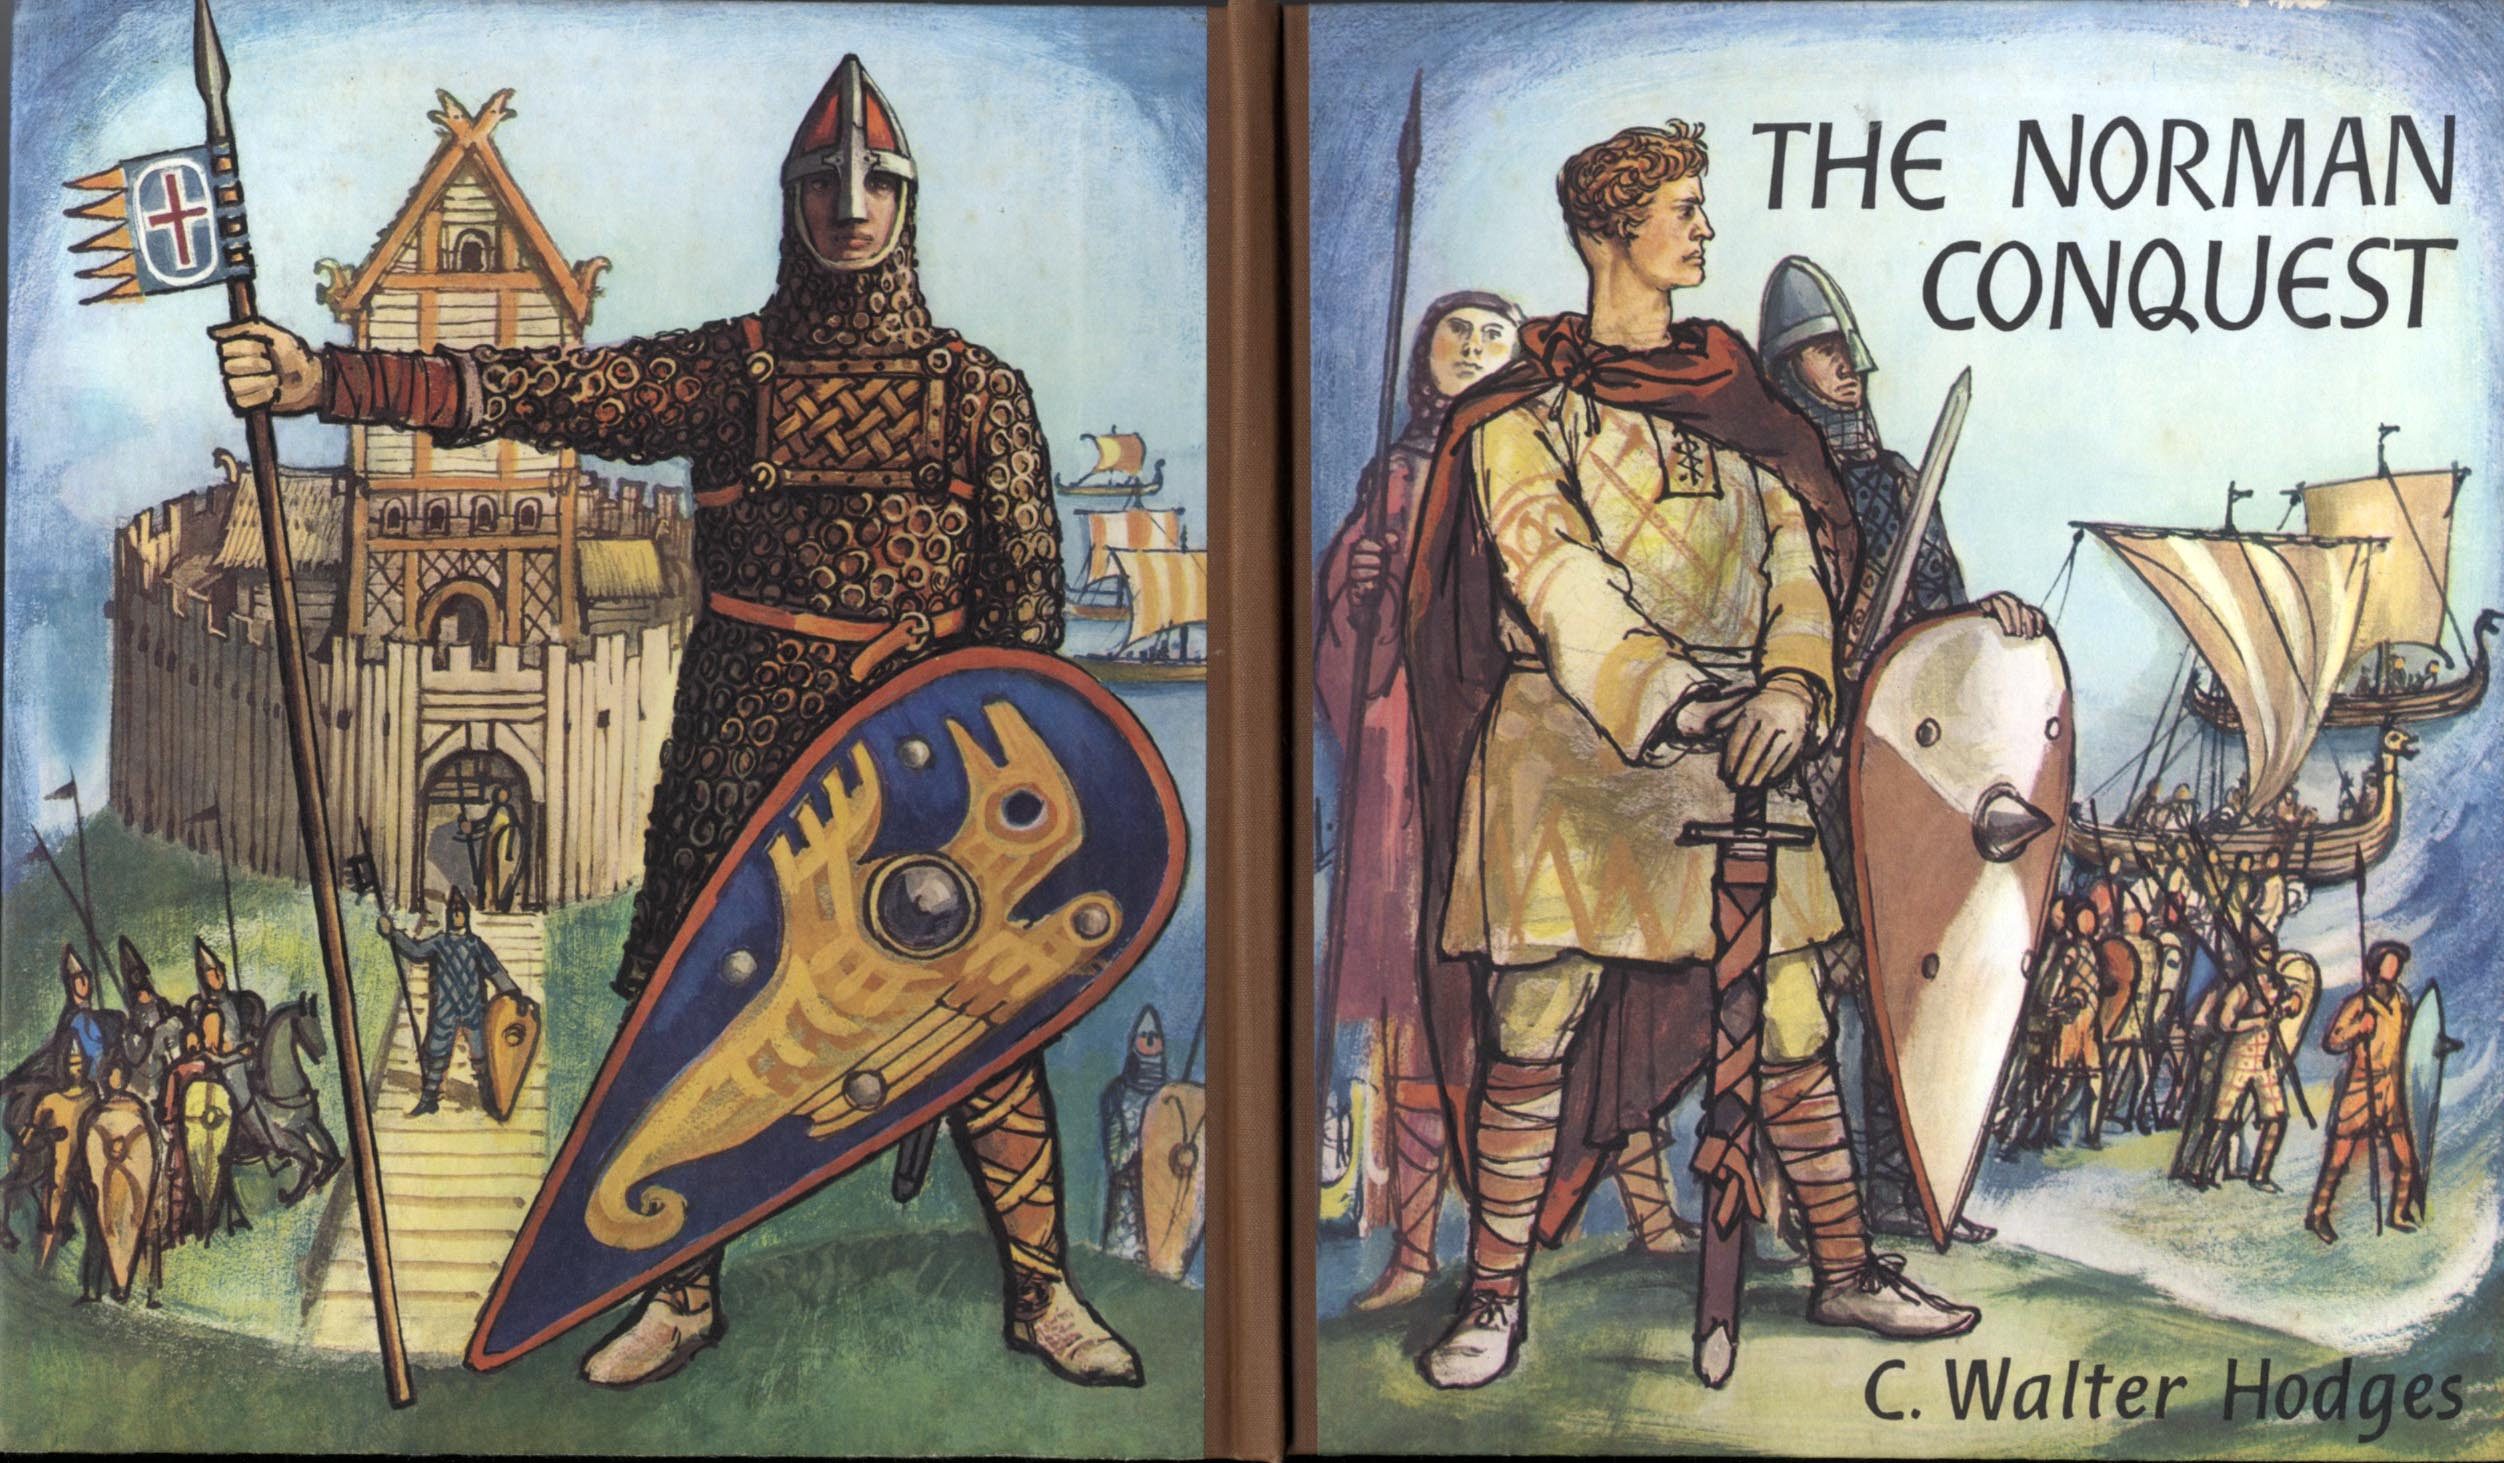 a history of the norman conquest at the battle of hastings Read another story from us: hastings and beyond: the norman conquest of england the battle was over and with it saxon rule of england duke william of normandy became king william of england, bringing in french language, customs, and laws.